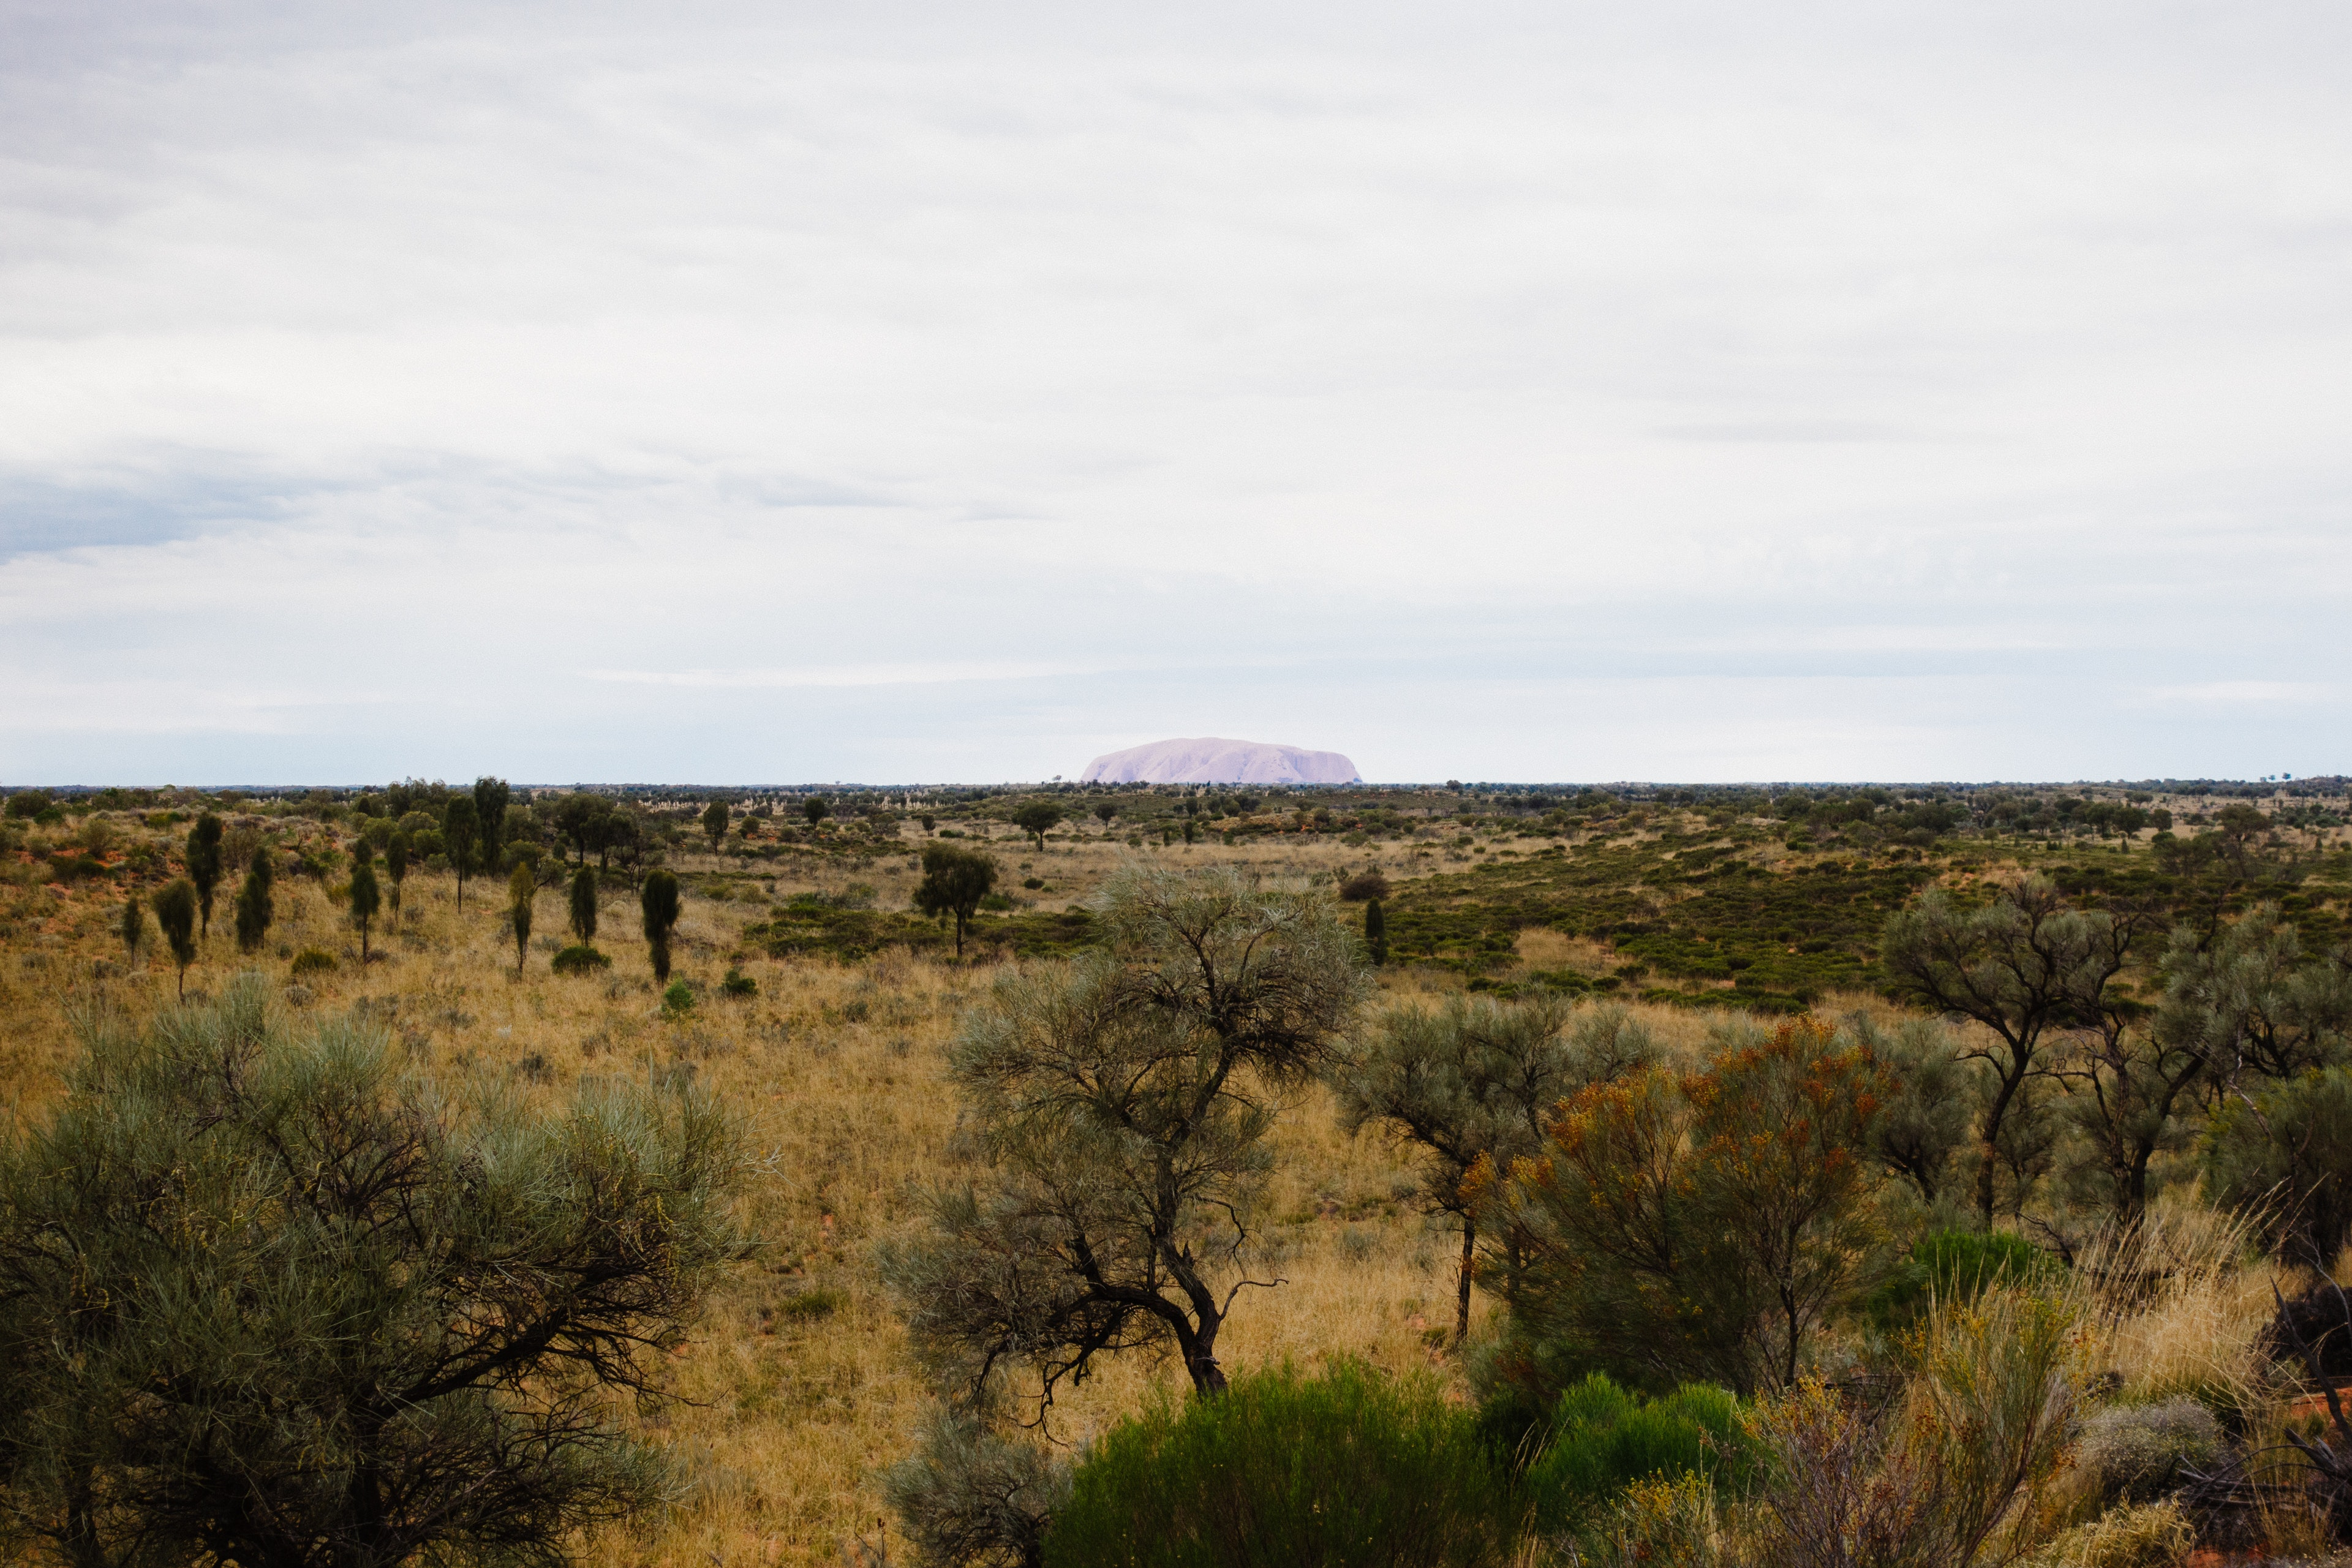 A view too Uluru from the Olgas viewing area